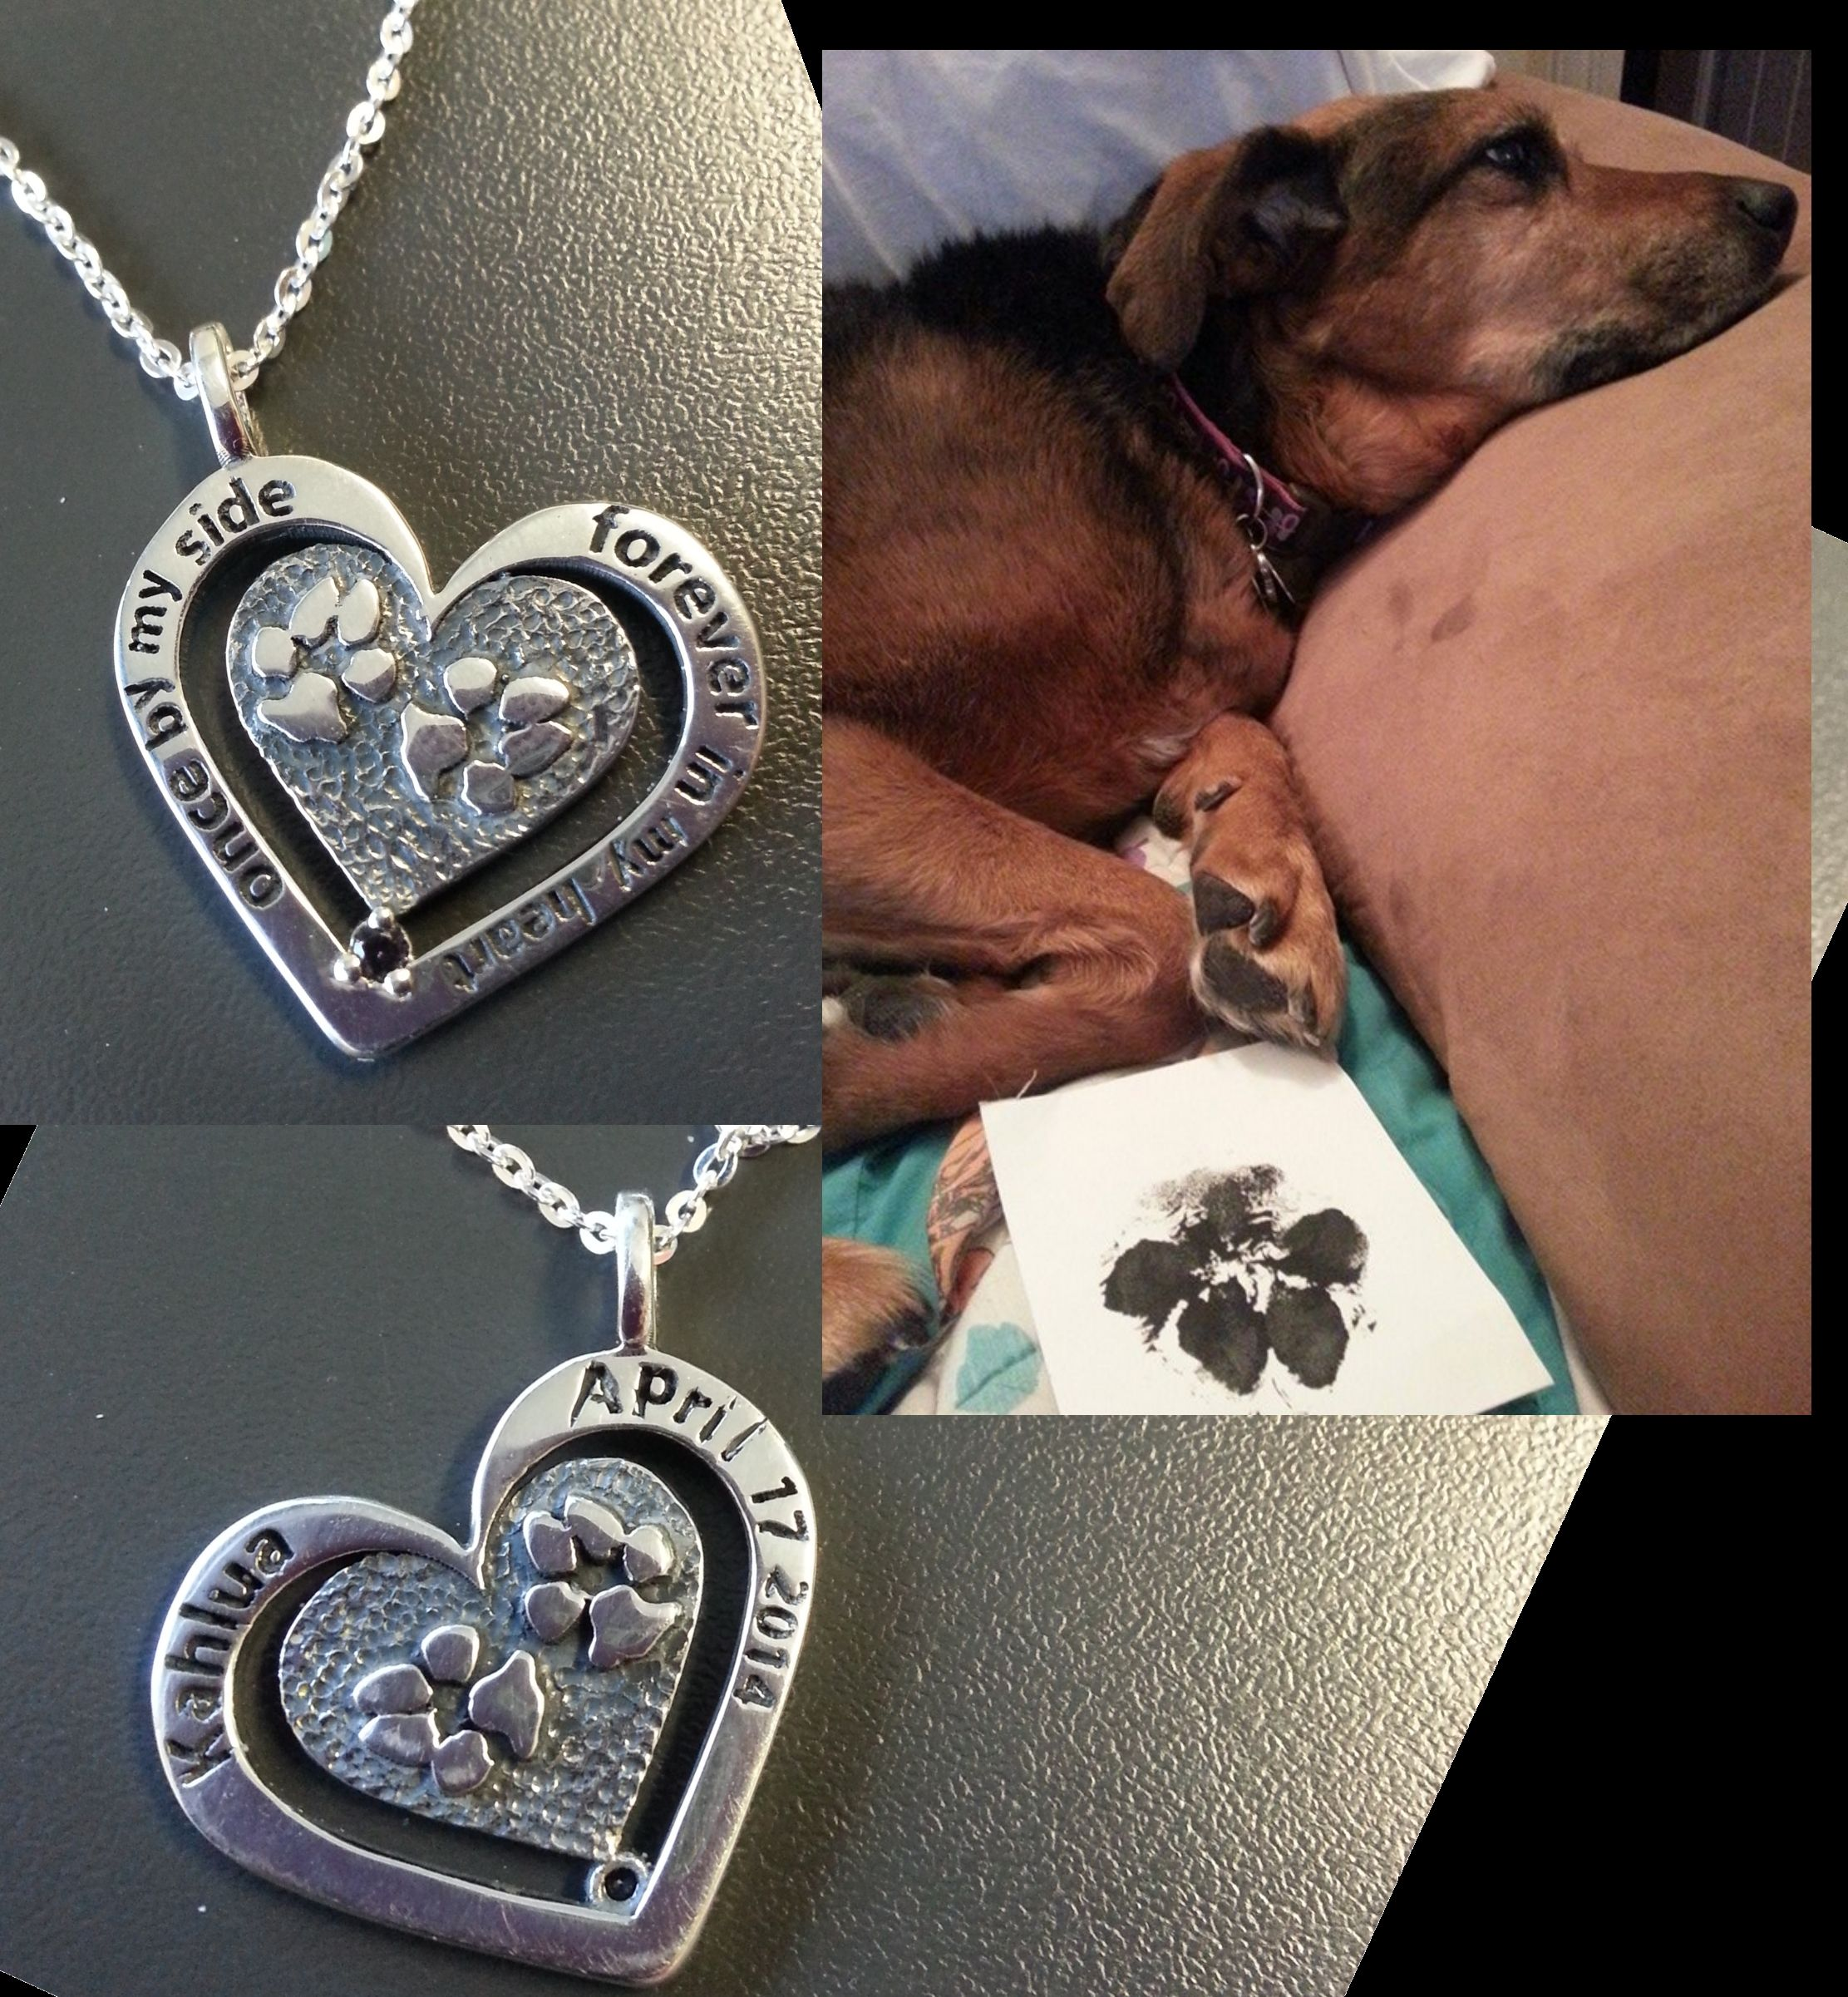 I can't thank What On Earth Jewelers enough for the beautiful rendition of my vision. Before passing, Kahlua left me with a paw print (and many more on my heart) and they took that print and made it into the most beautiful necklace. THANK YOU! Just in time for my birthday.